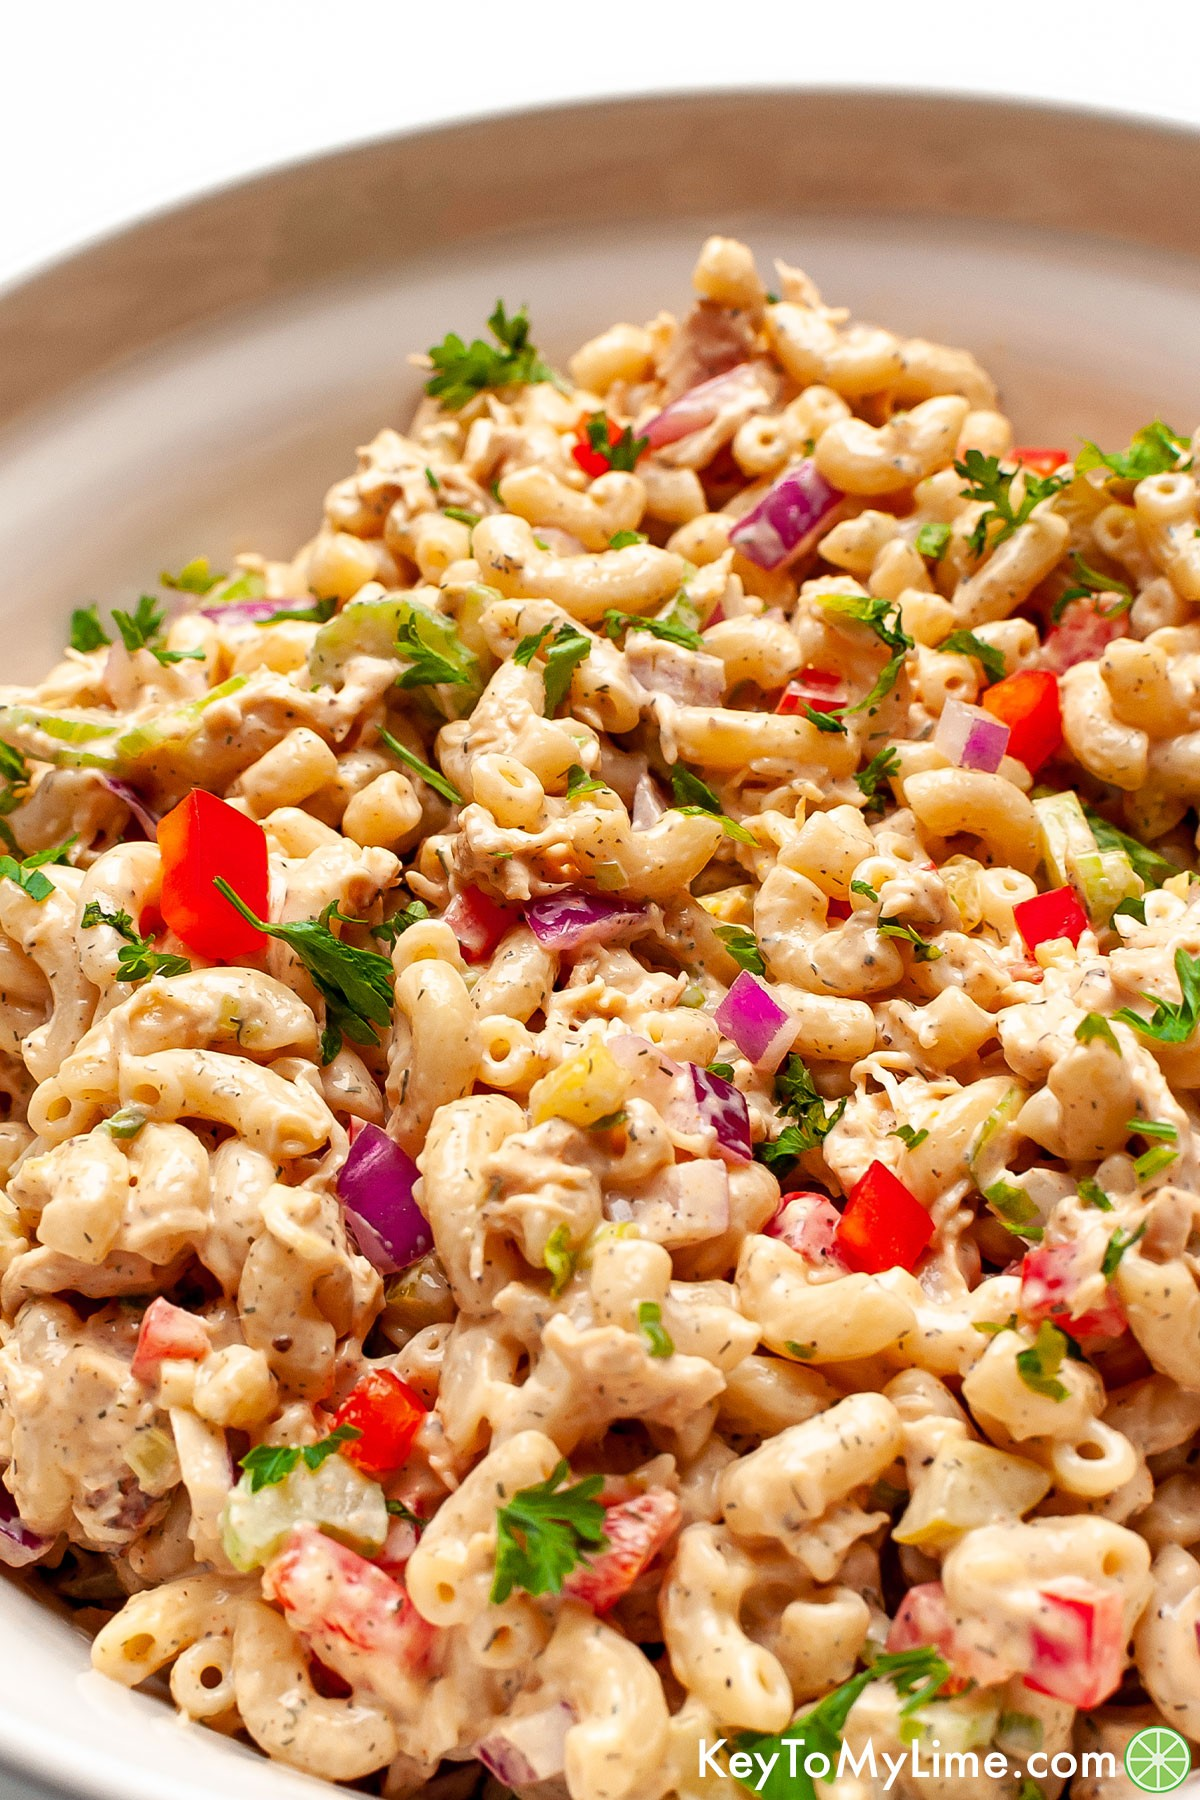 A close up image of a large bowl of chicken macaroni salad.